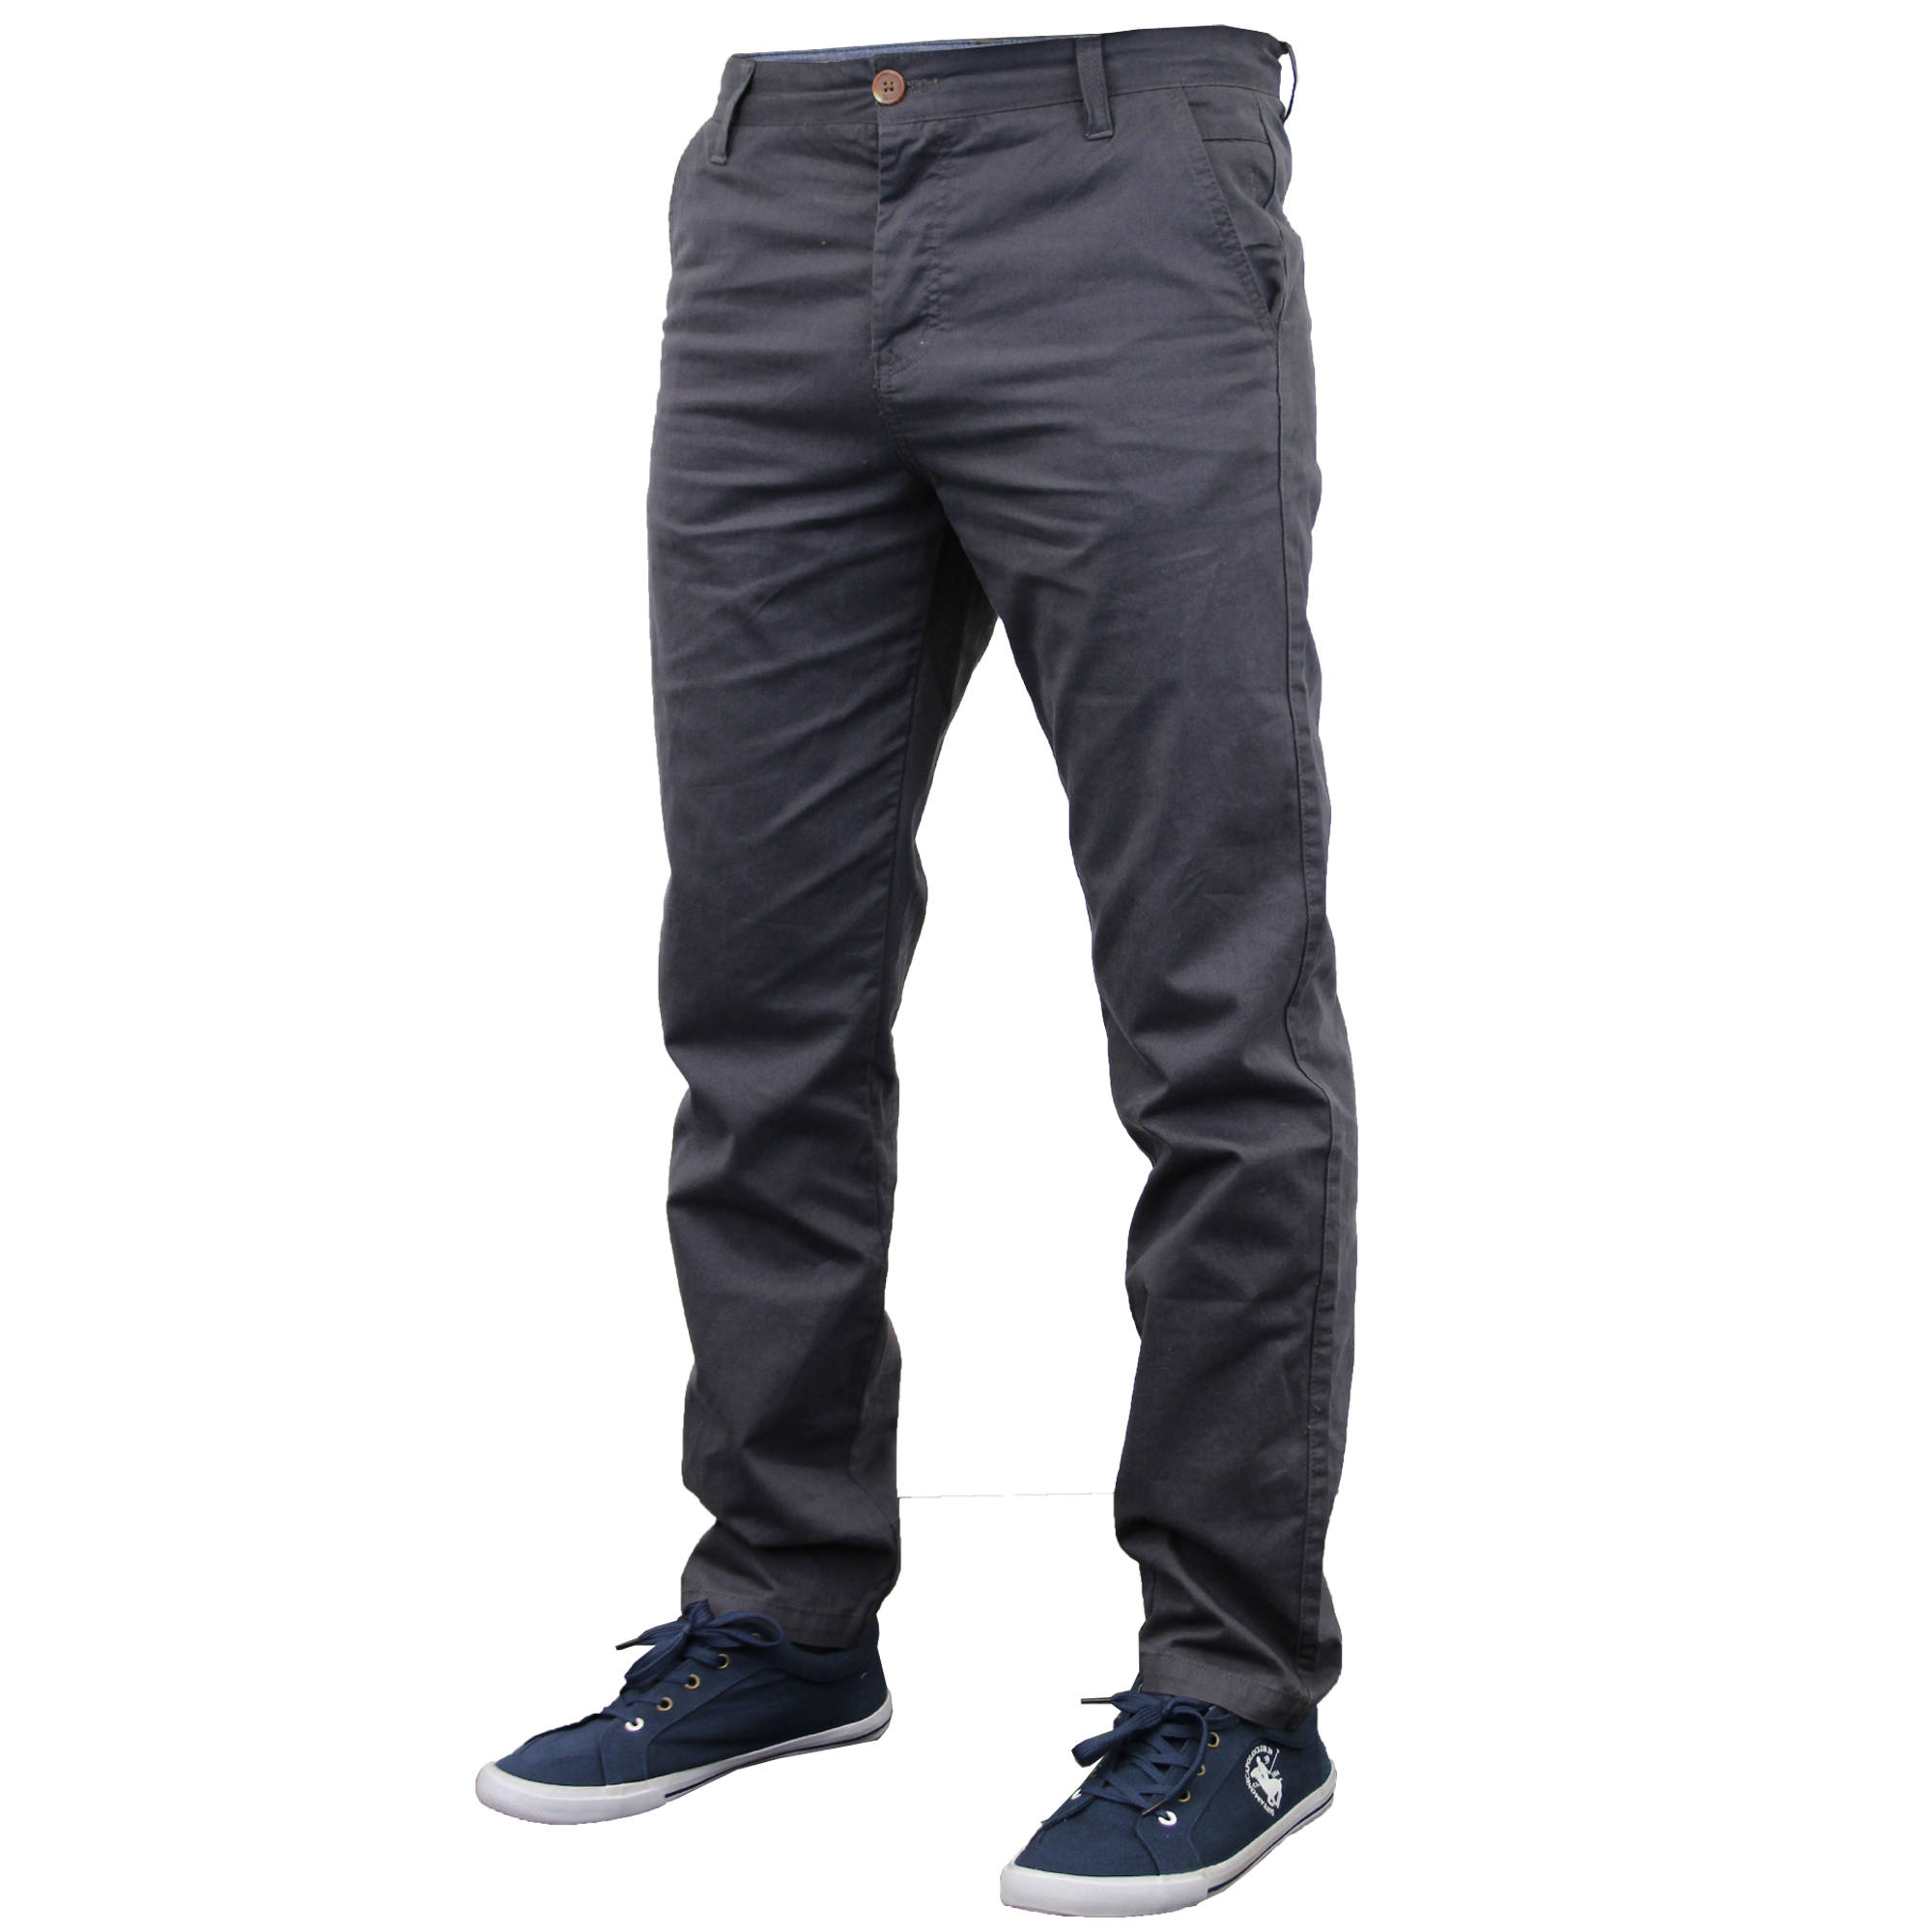 Get the essential skinny jeans for men with the right fit for you. DSTLD's mens skinny jeans provide a modern, tailored look and fitted feel that can easily be dressed up or down. Choose from two fitted styles: our Skinny jeans for men hug your leg and are highly tapered, while our Skinny-Slim jeans offer a bit more room in the thigh while.